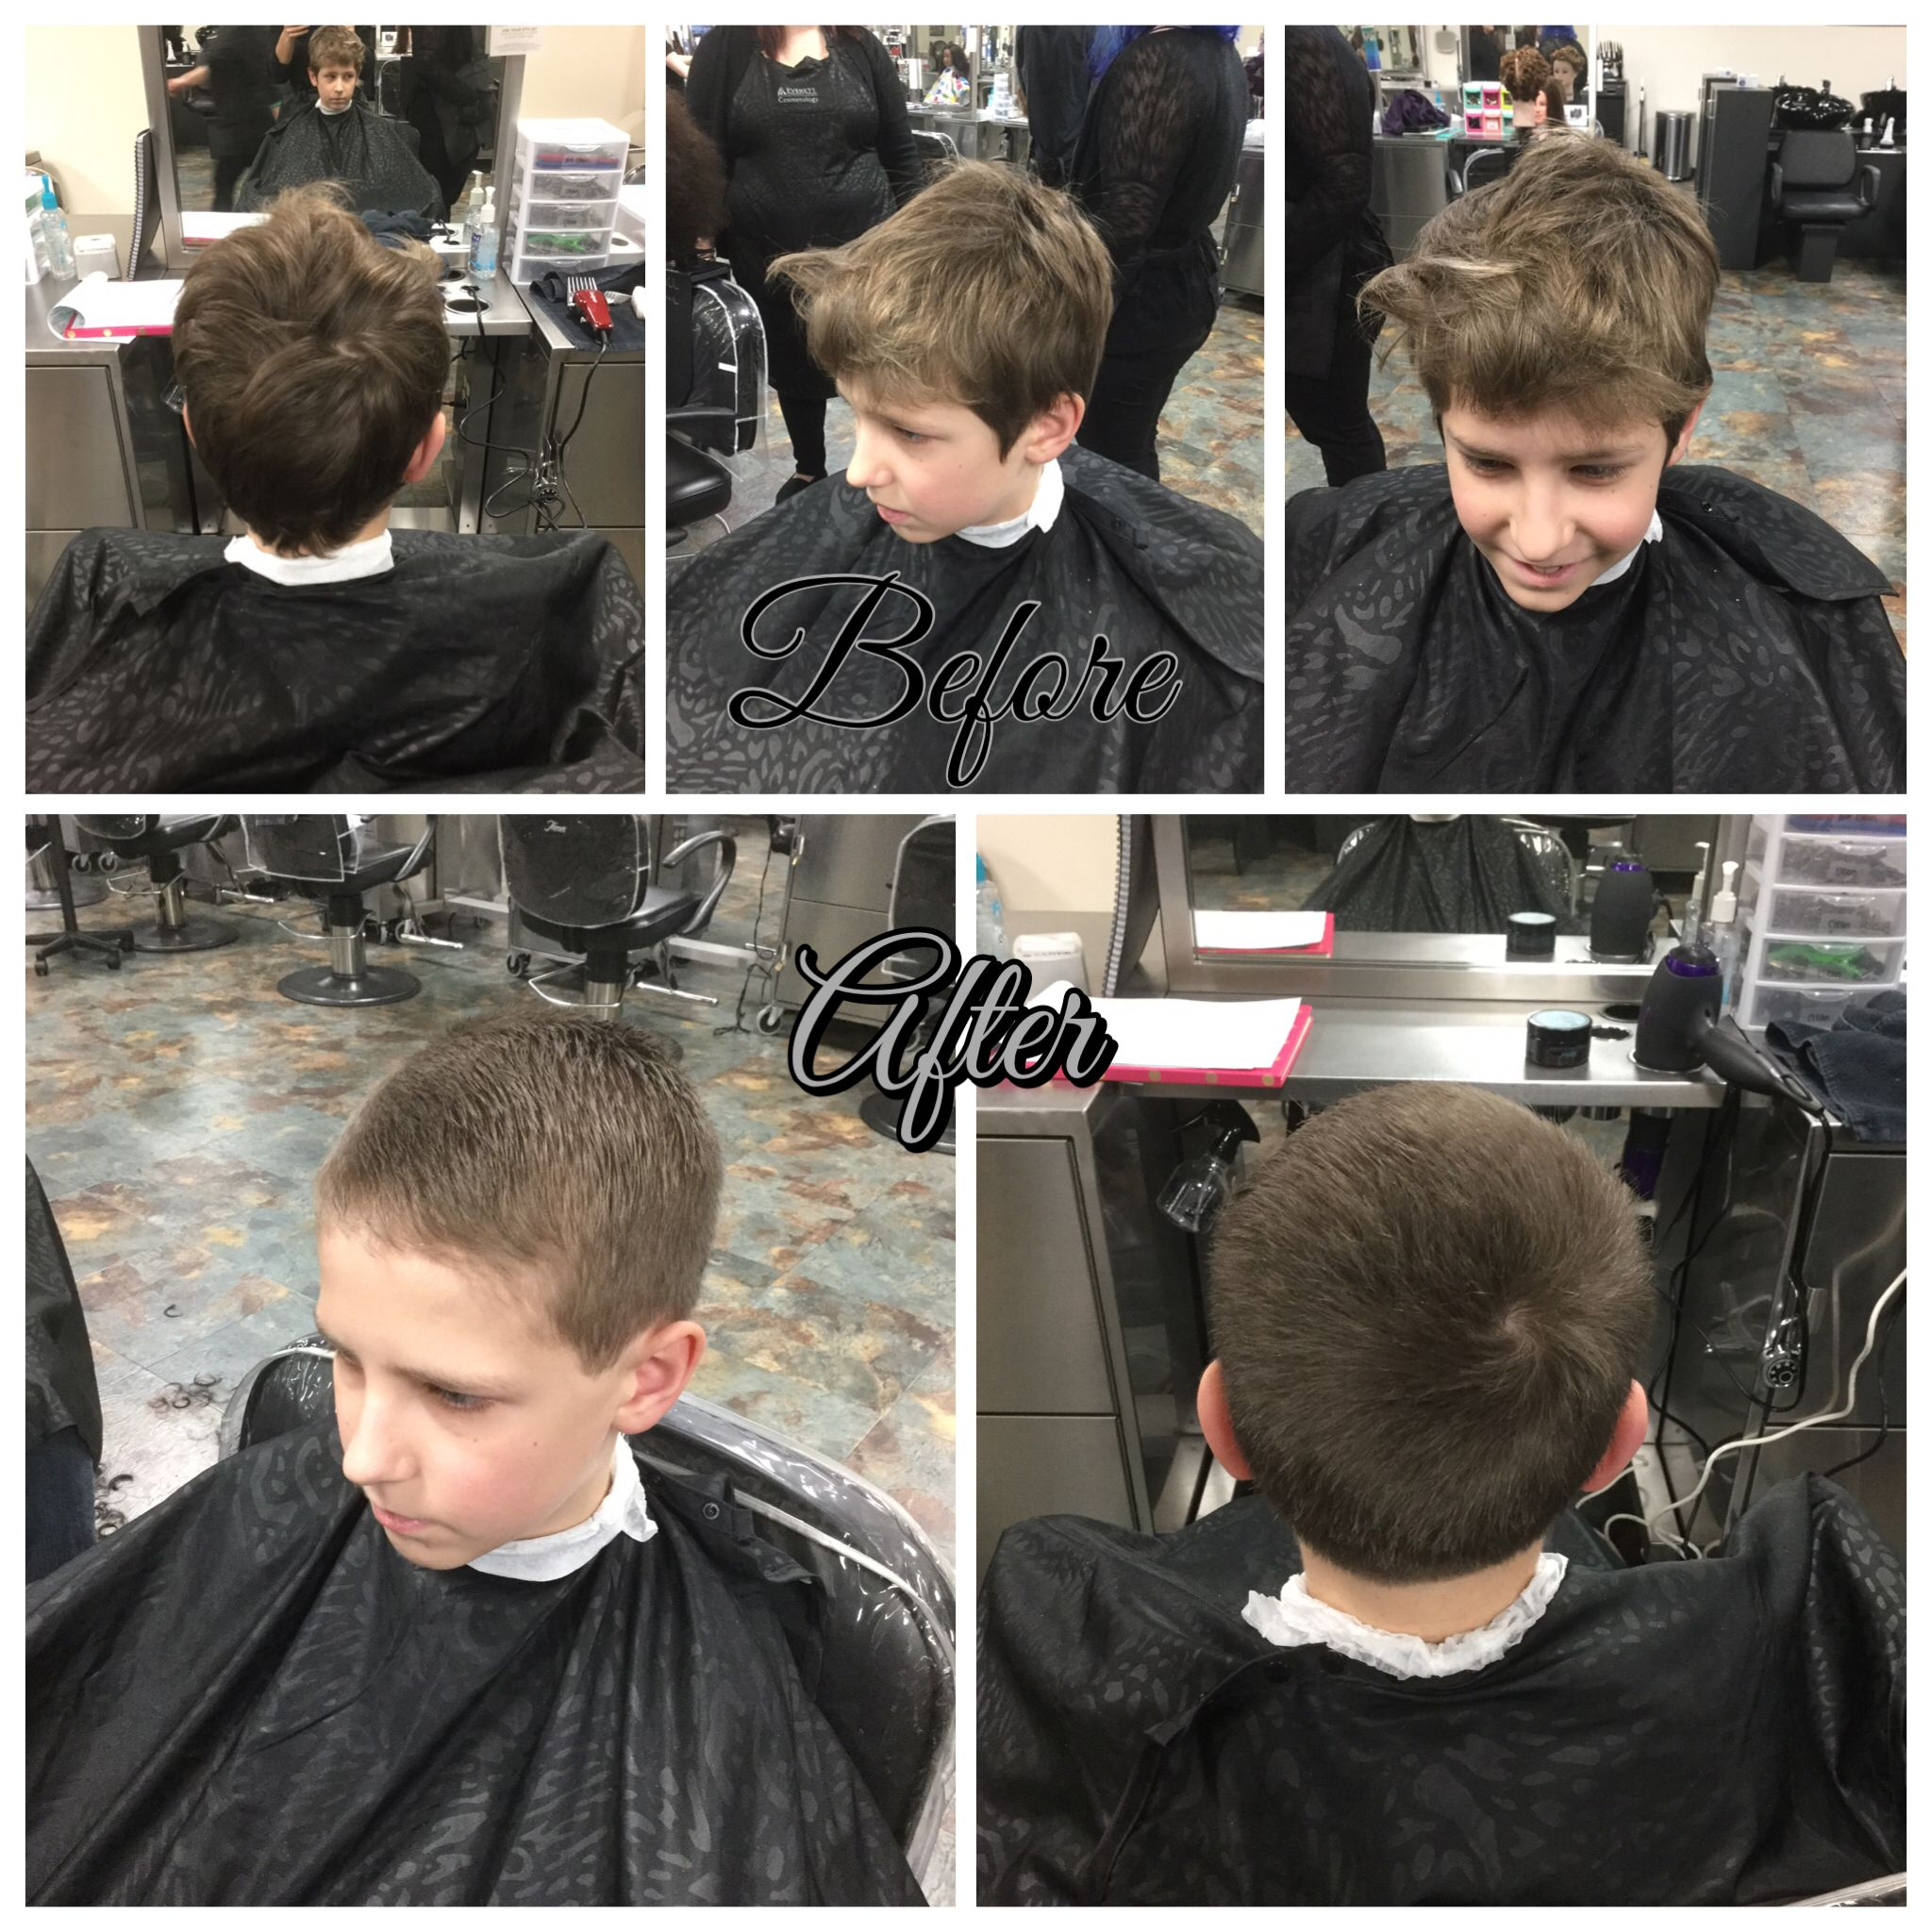 Haircut By Doing A 4 Guard On Sides And 8 Guard On Top Blended With